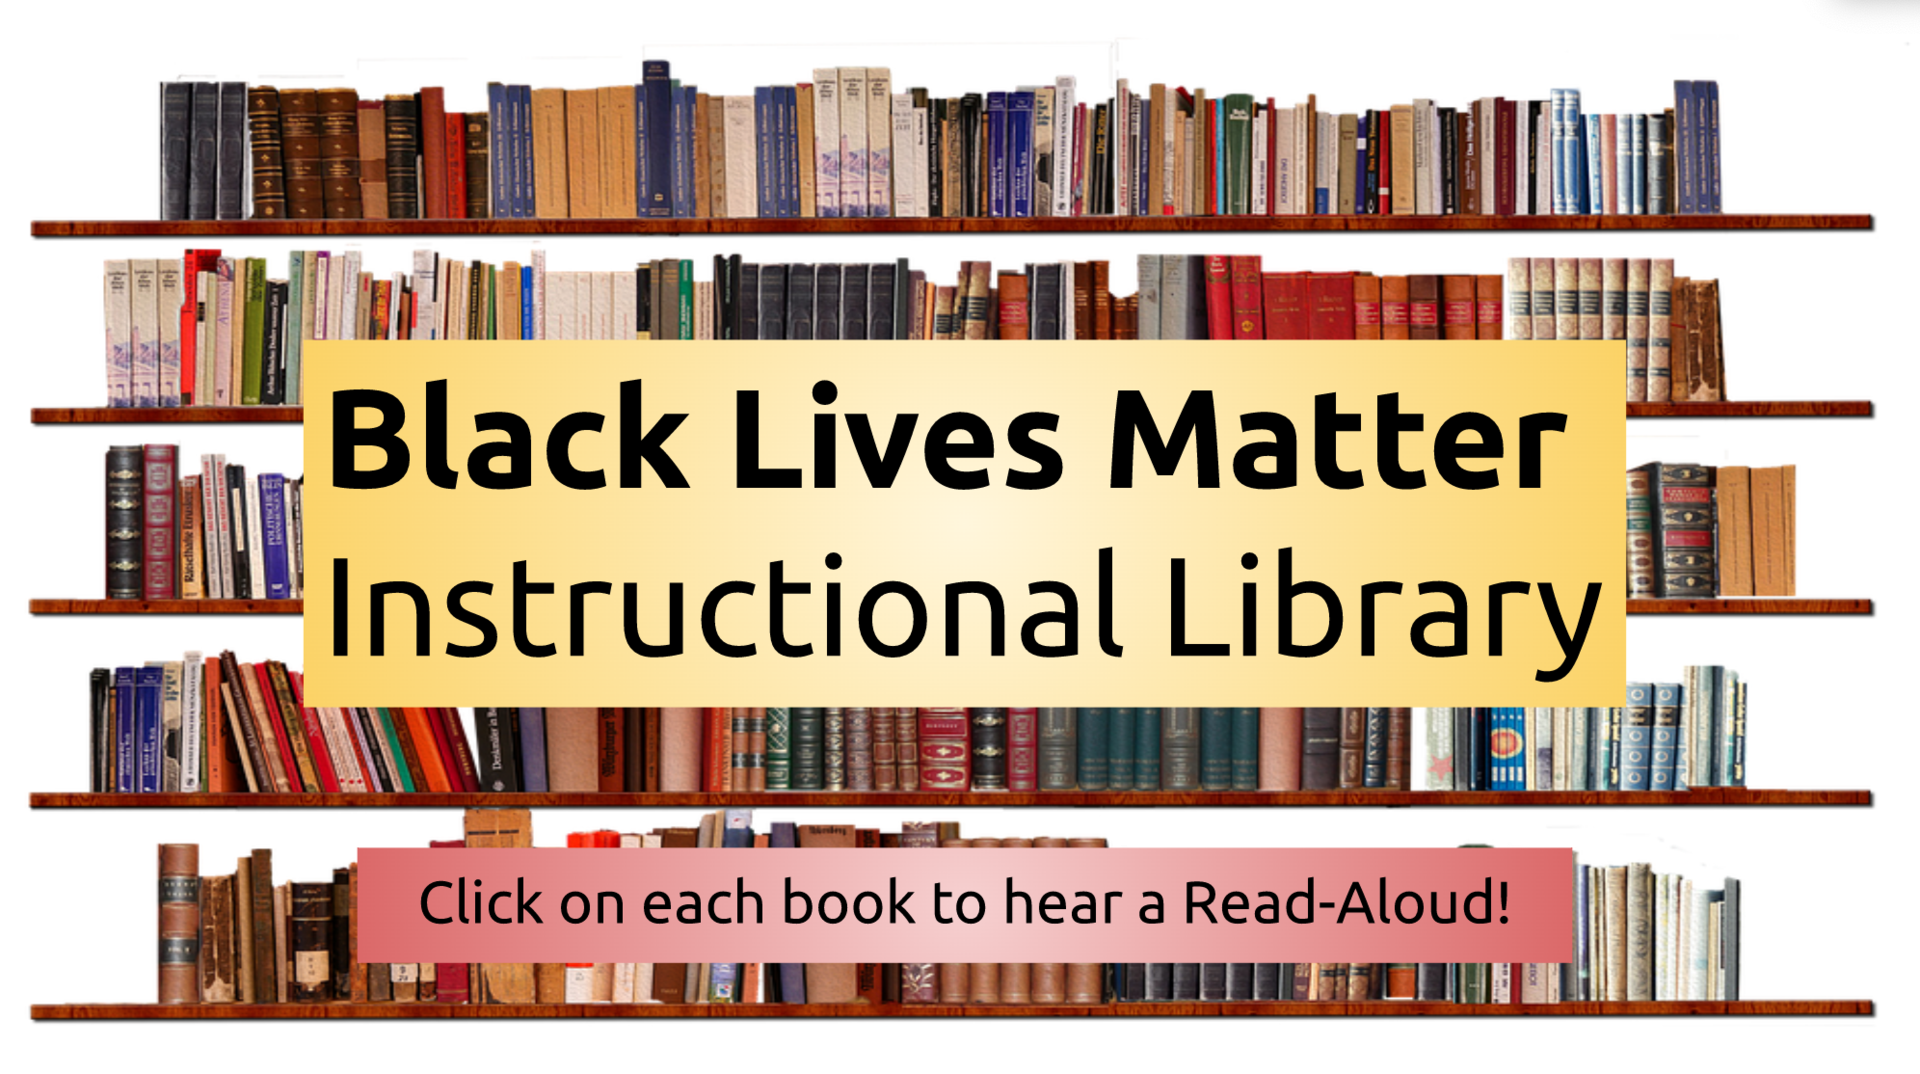 Black Lives Matter Library